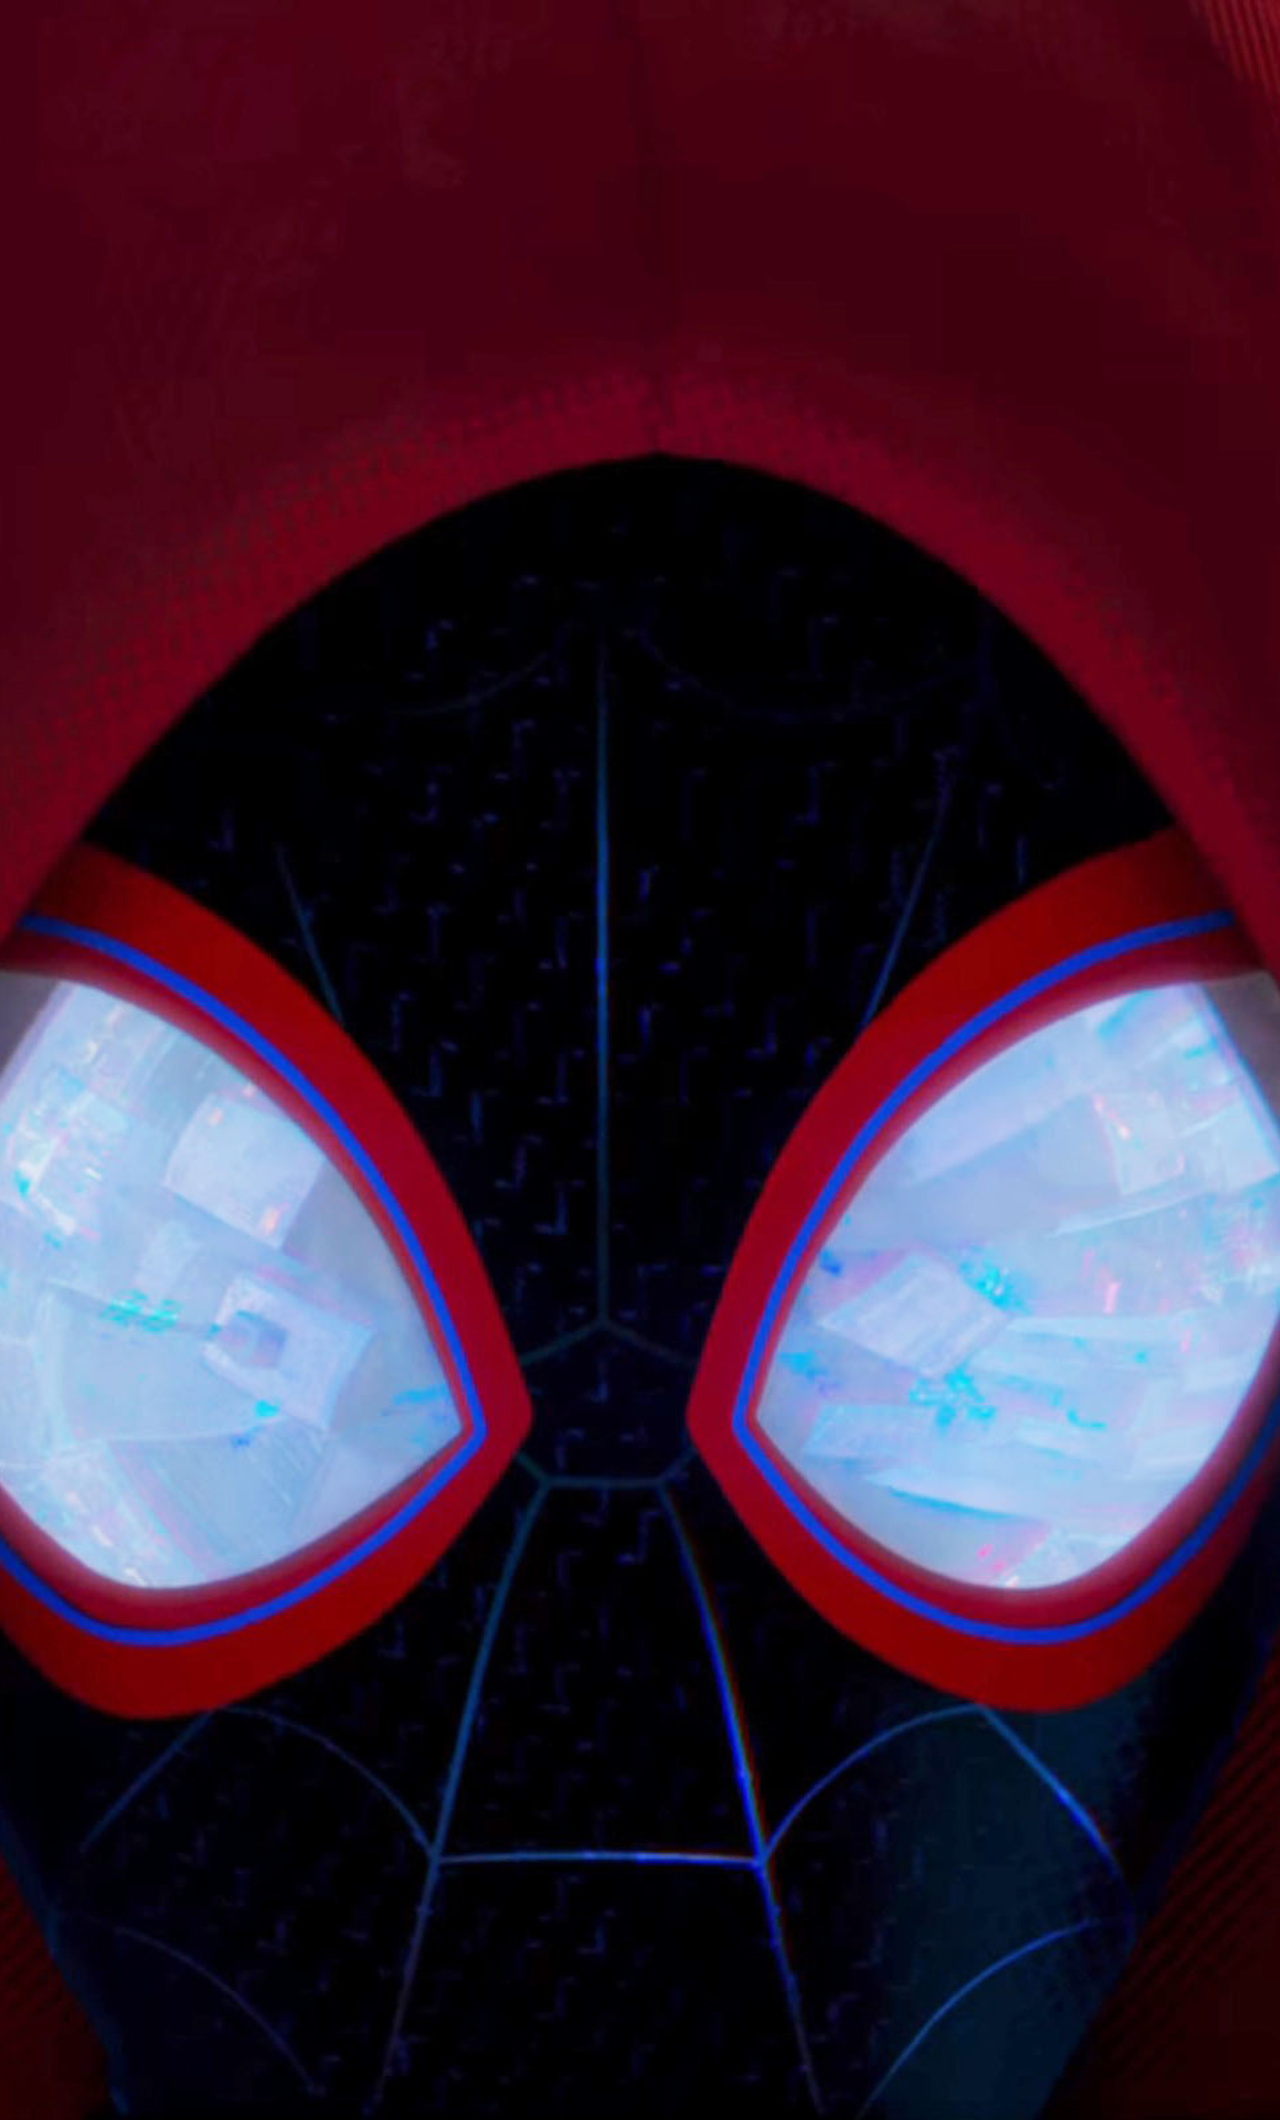 1280x2120 Spiderman Into The Spider Verse 2018 Iphone 6 Hd 4k